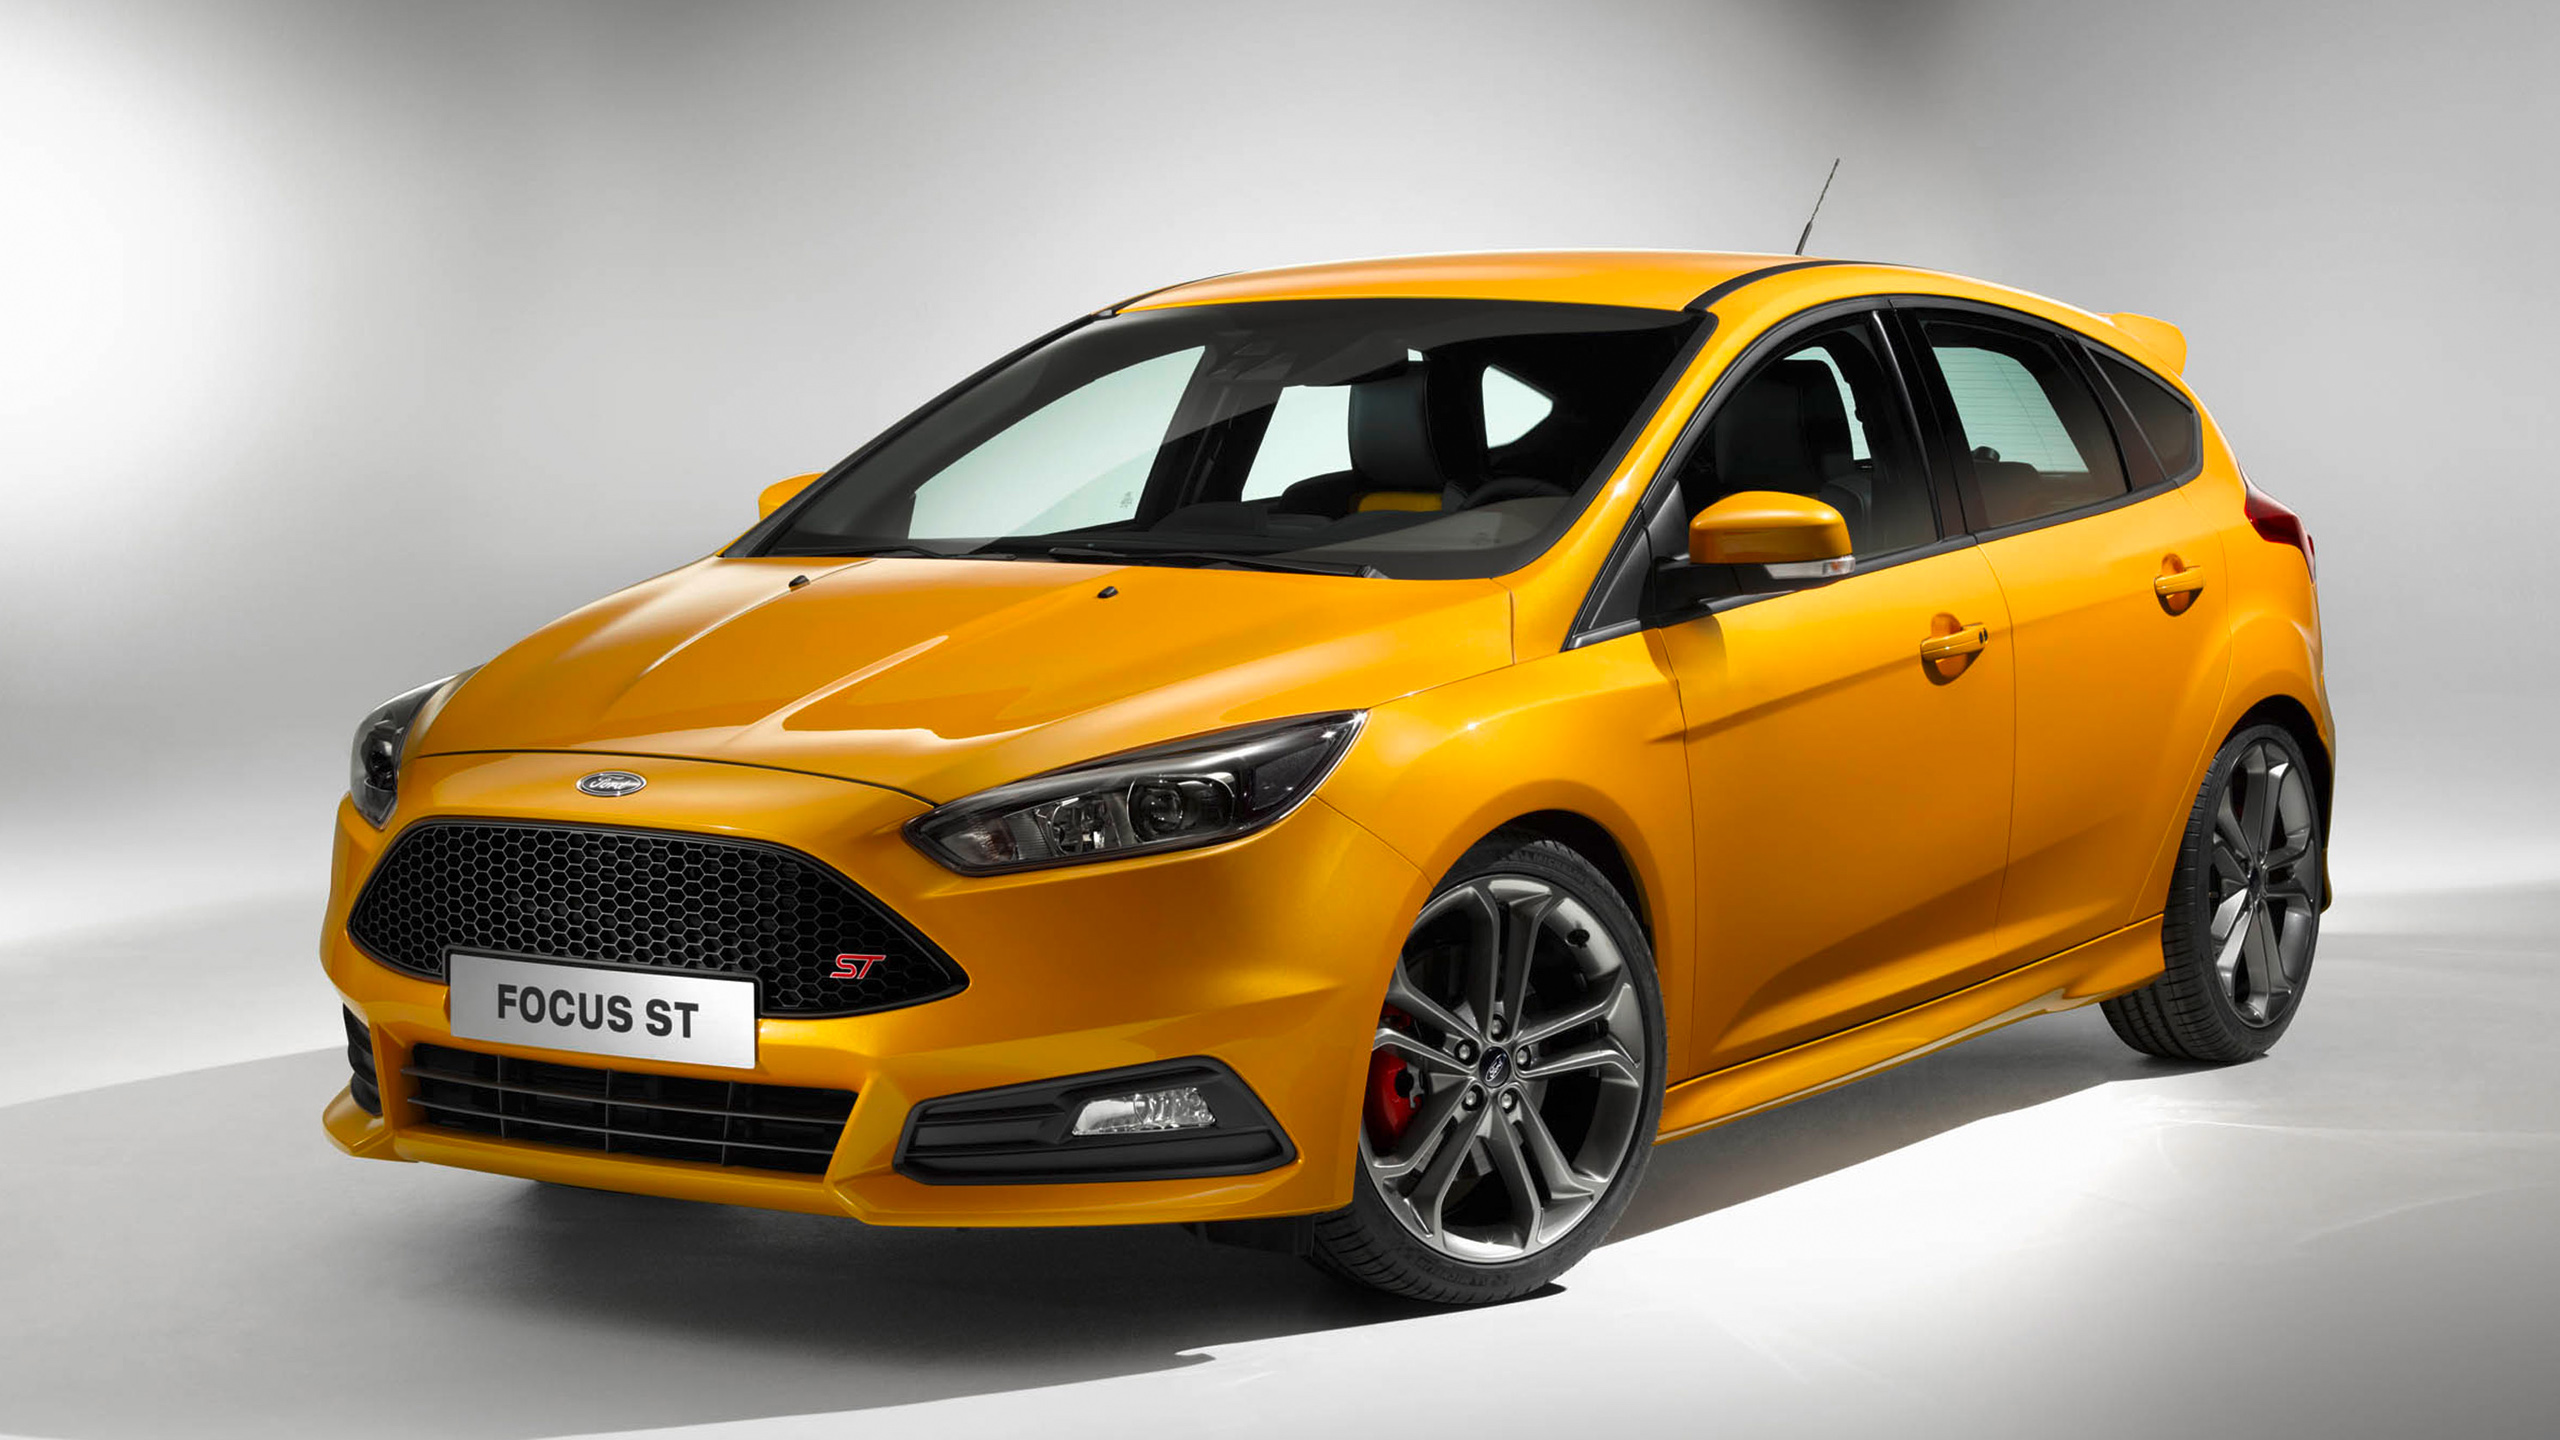 2015 Ford Focus St Wallpaper Hd Car Wallpapers Id 4604